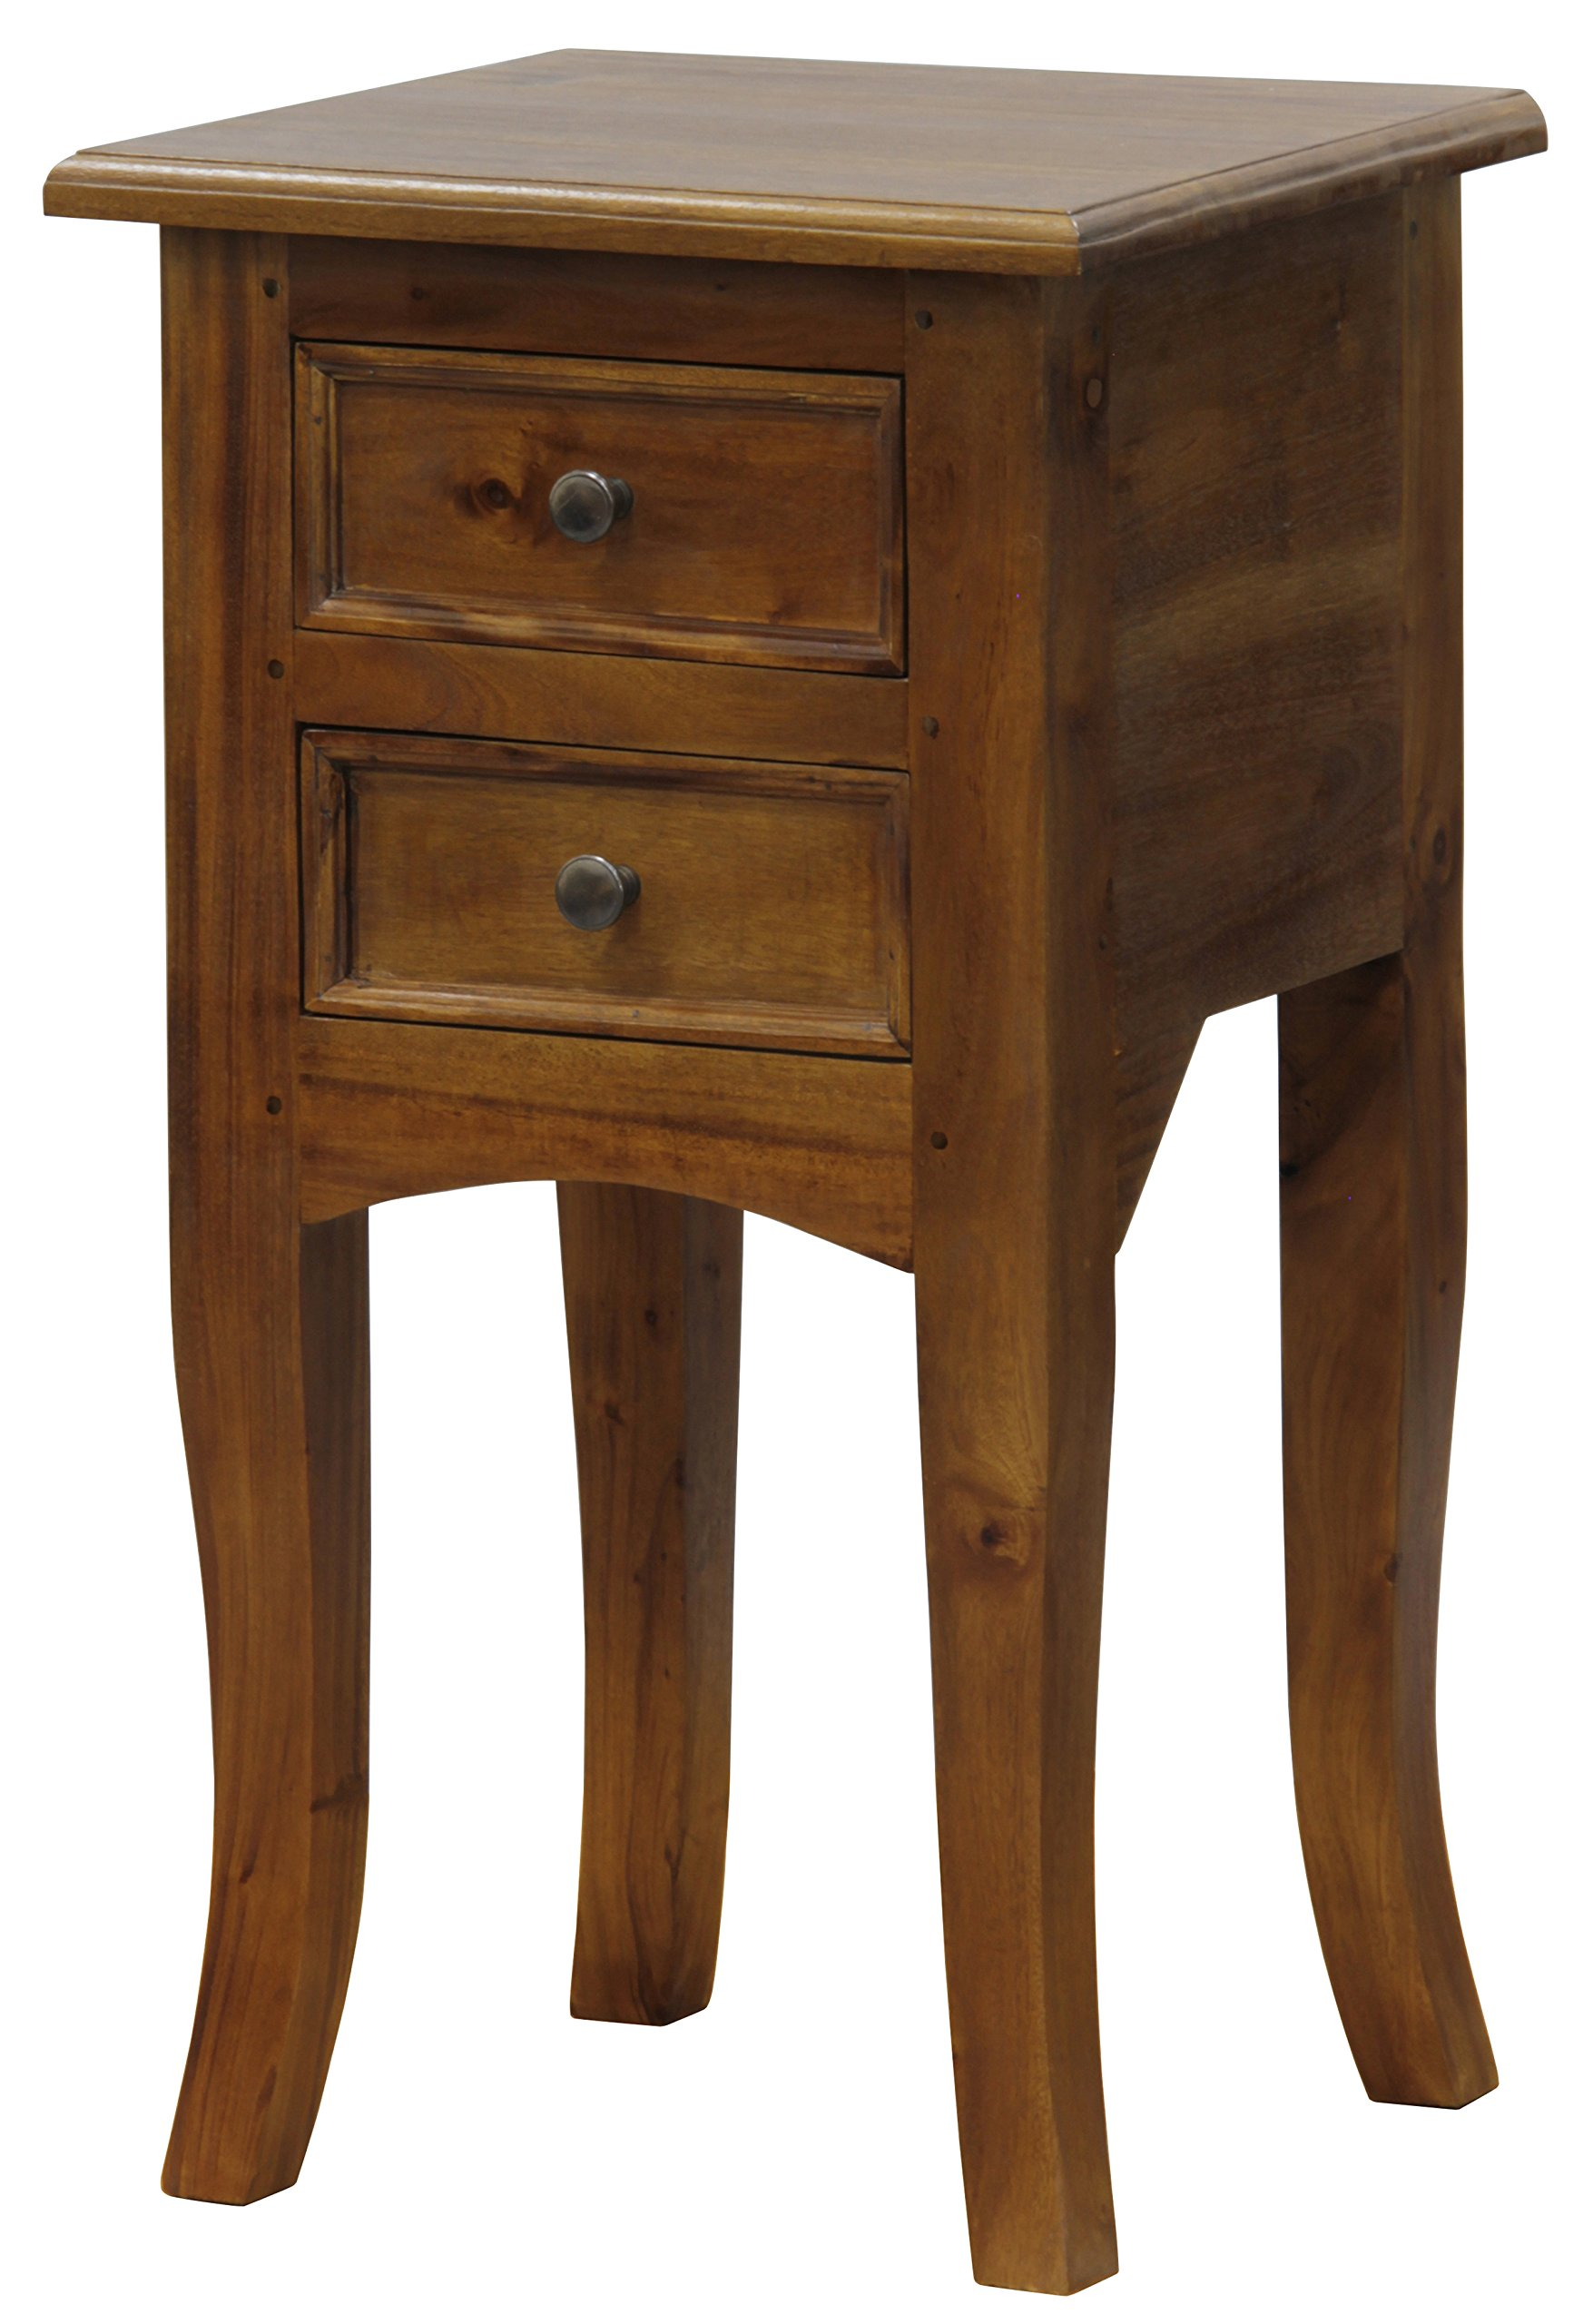 NES Furniture Fine Handcrafted Solid Mahogany Wood Amsterdam Plant Stand - 28 inches